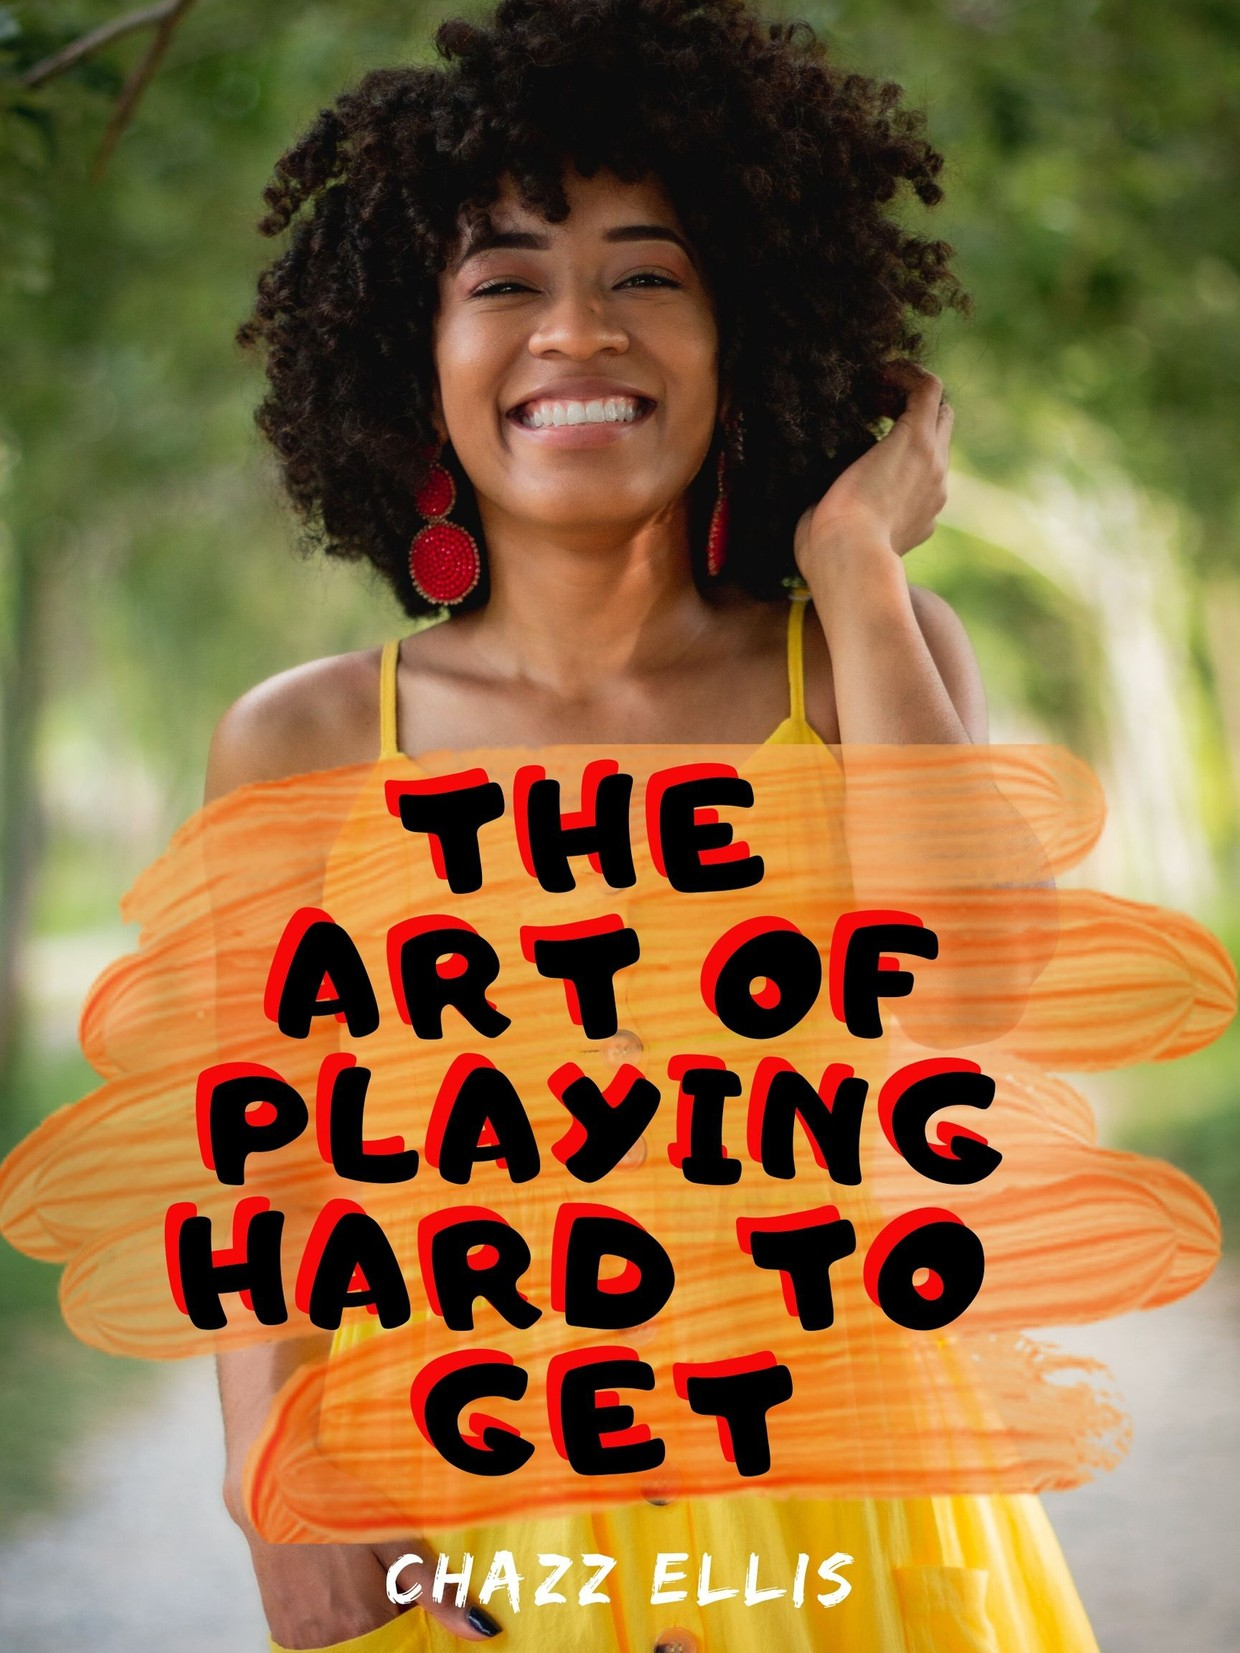 The Art of Playing Hard to Get